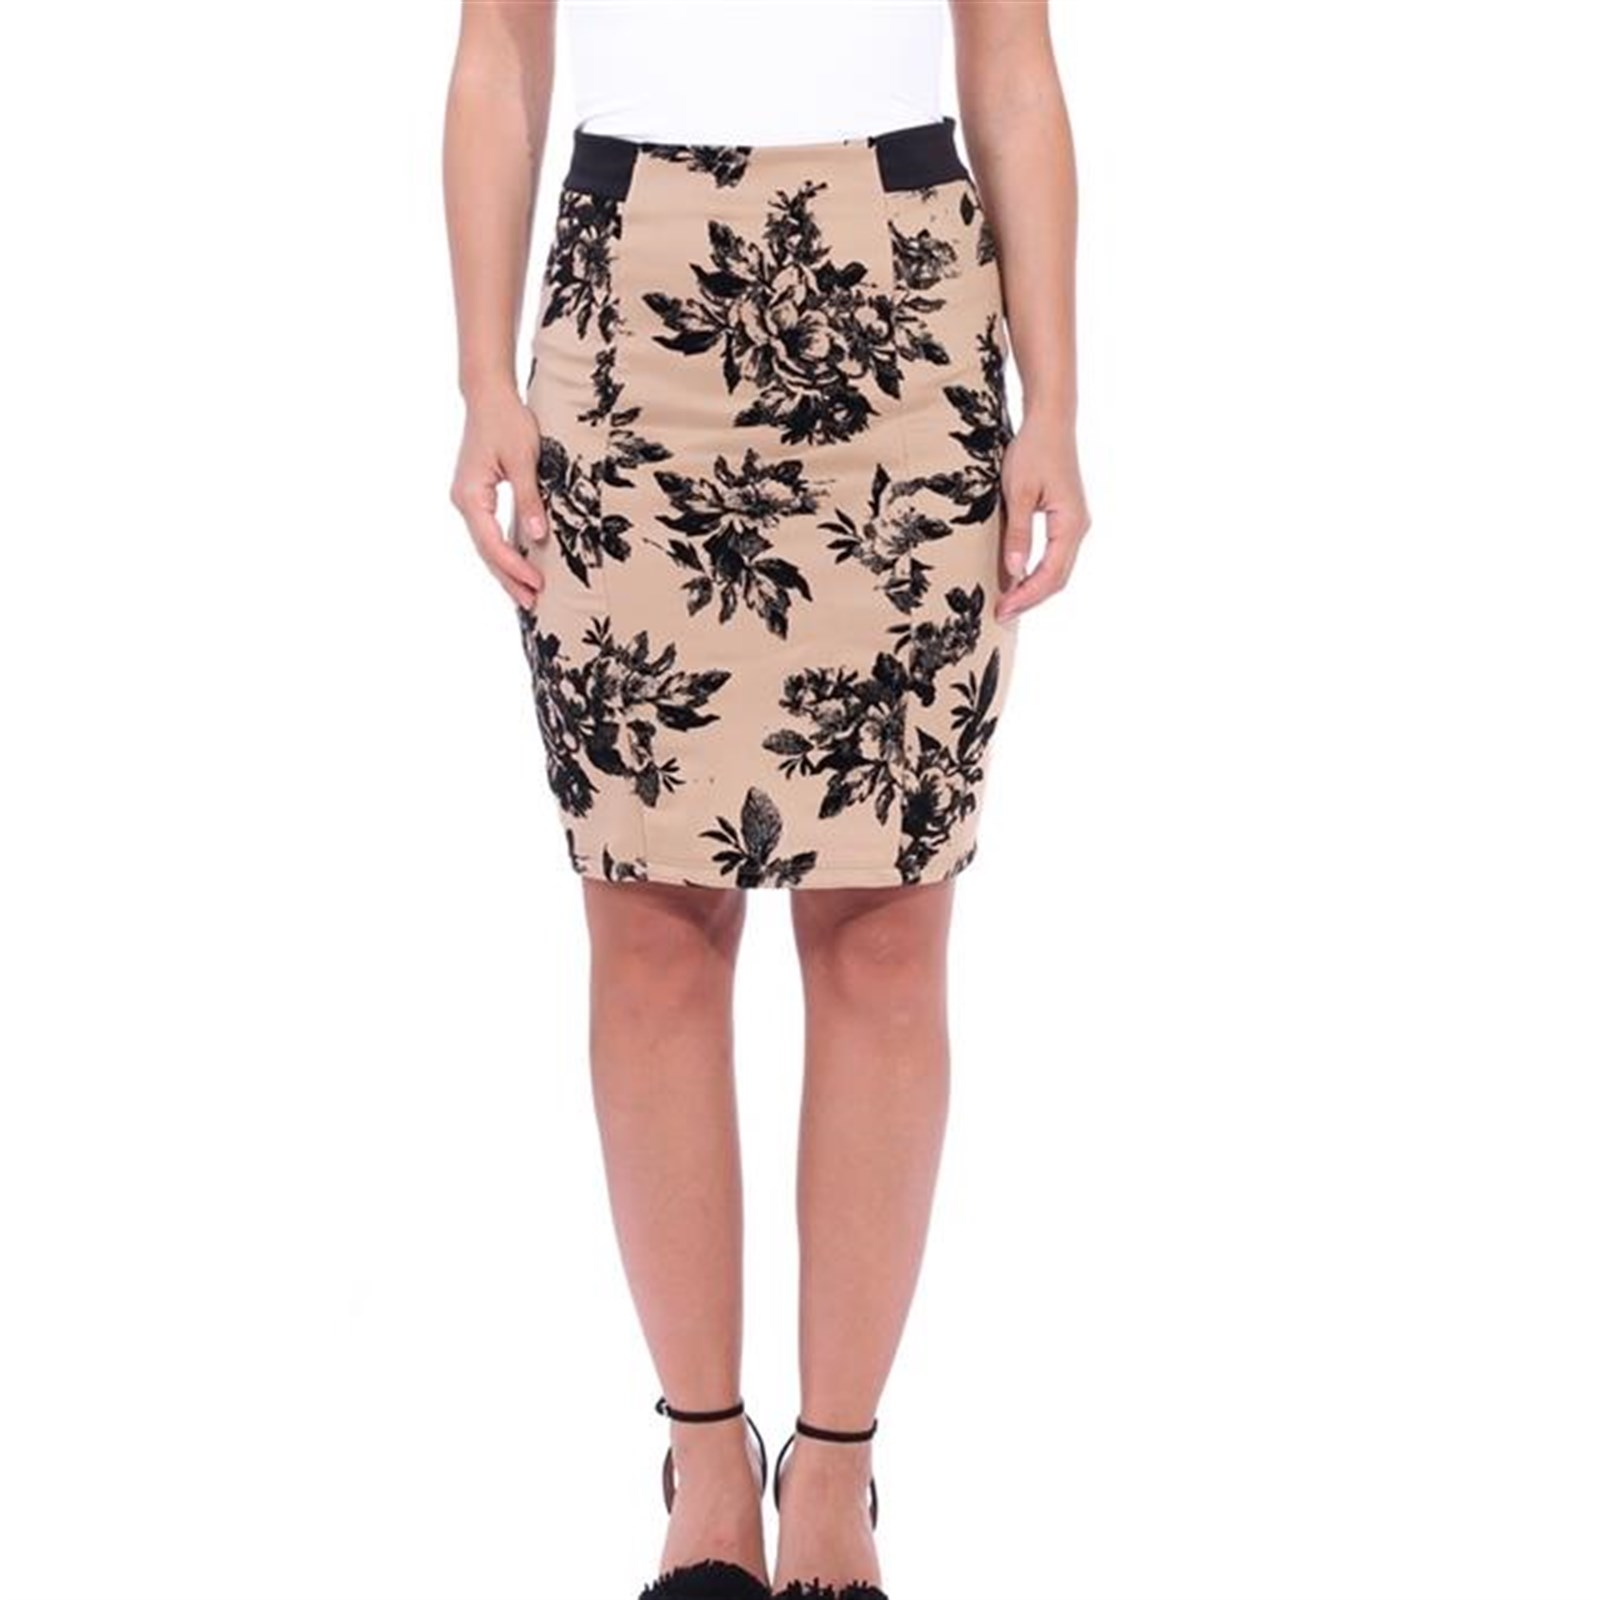 Floral High Waist Pencil Skirt Only $7.99 w/ Free Shipping